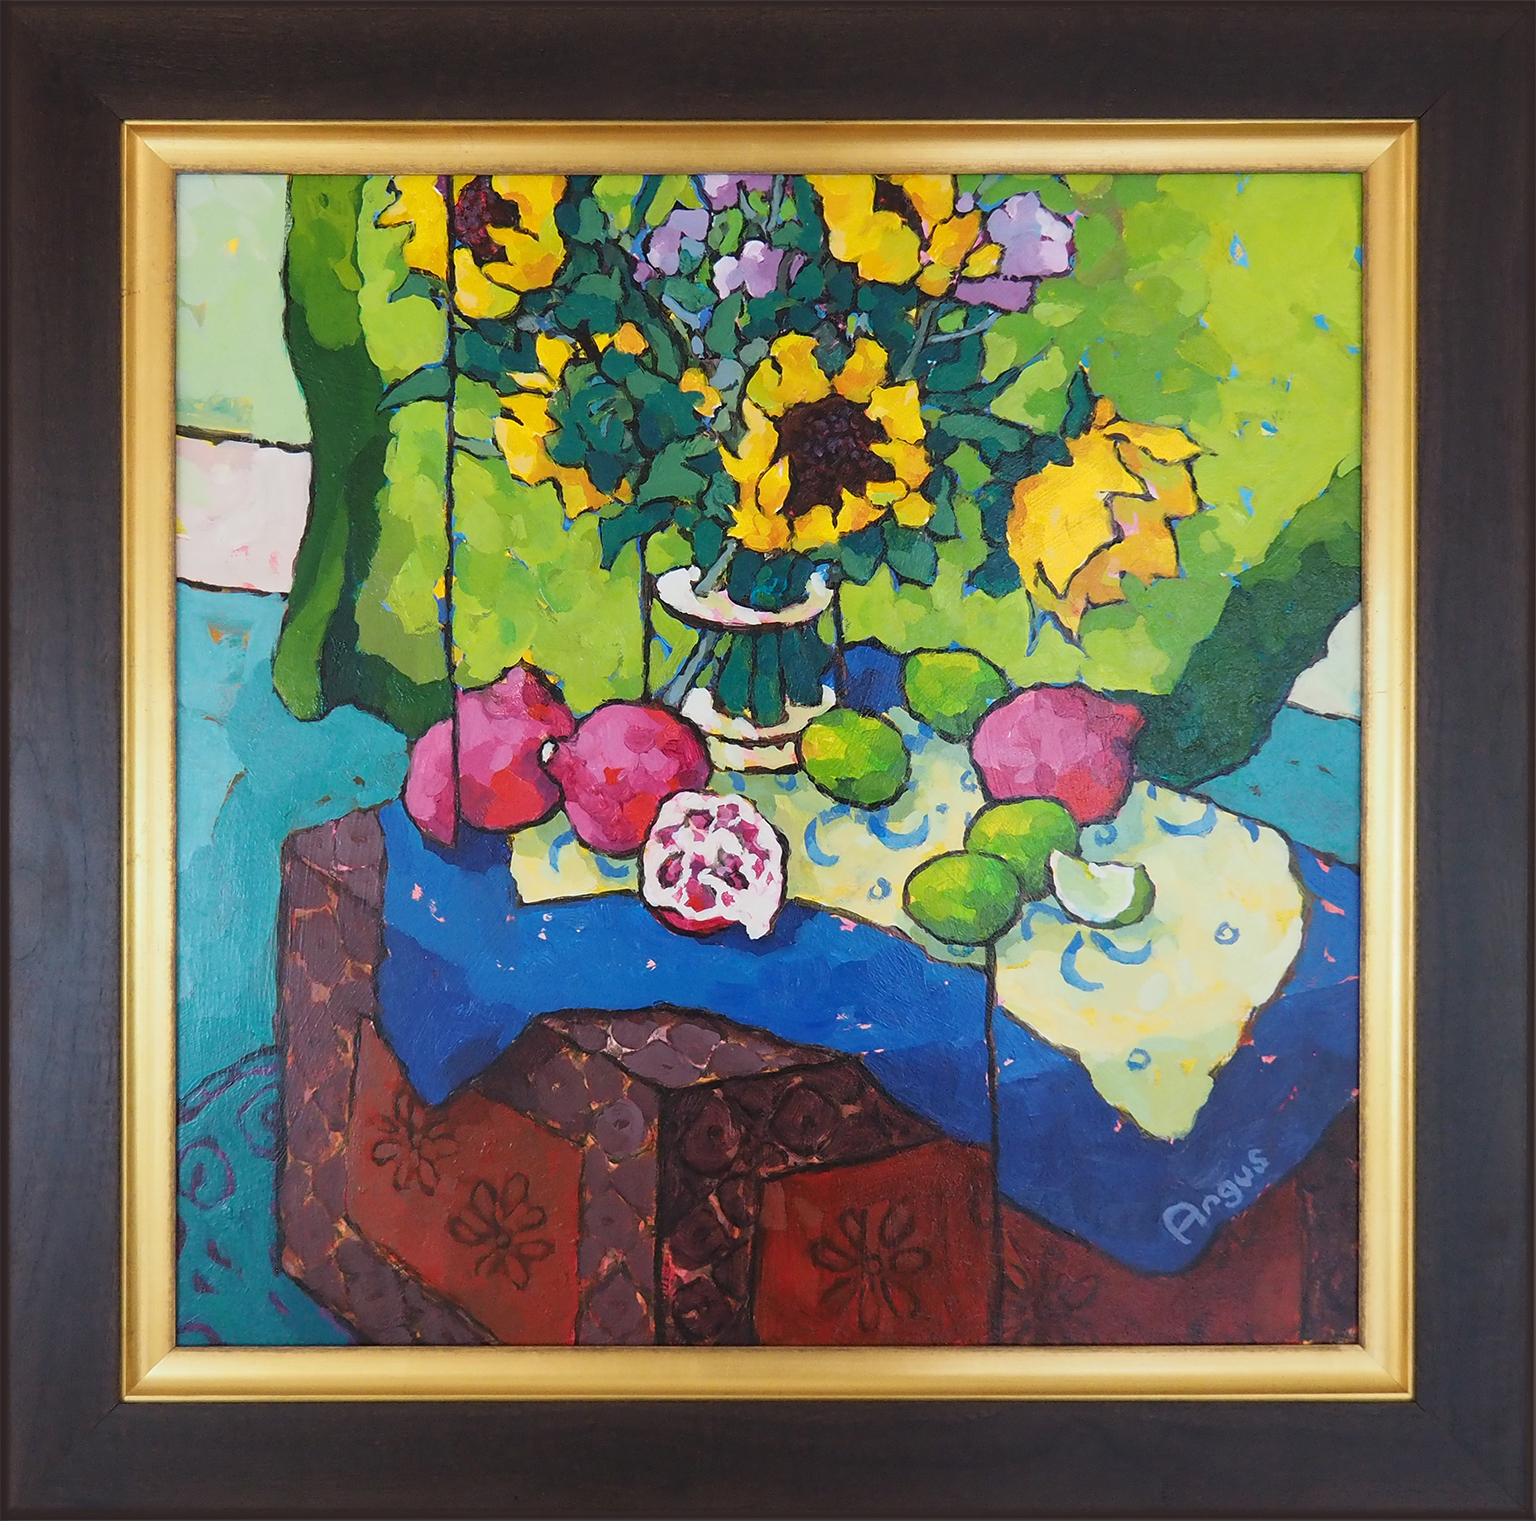 Angus Wilson - Sunflowers, Poms & Limes on Painted Box